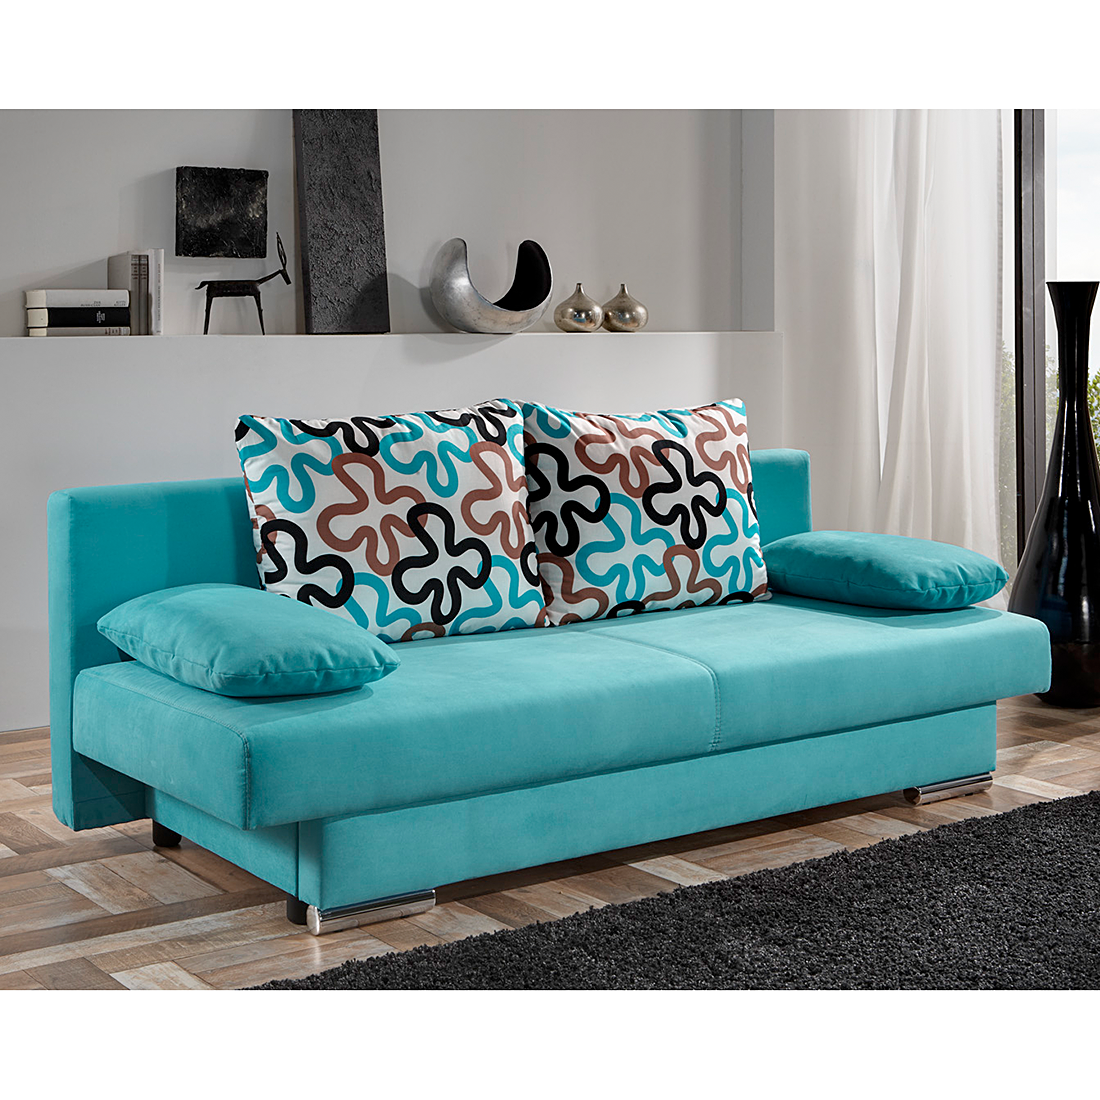 schlafsofa bettkasten stoff t rkis schlafcouch sofa couch einzelsofa bett neu ebay. Black Bedroom Furniture Sets. Home Design Ideas